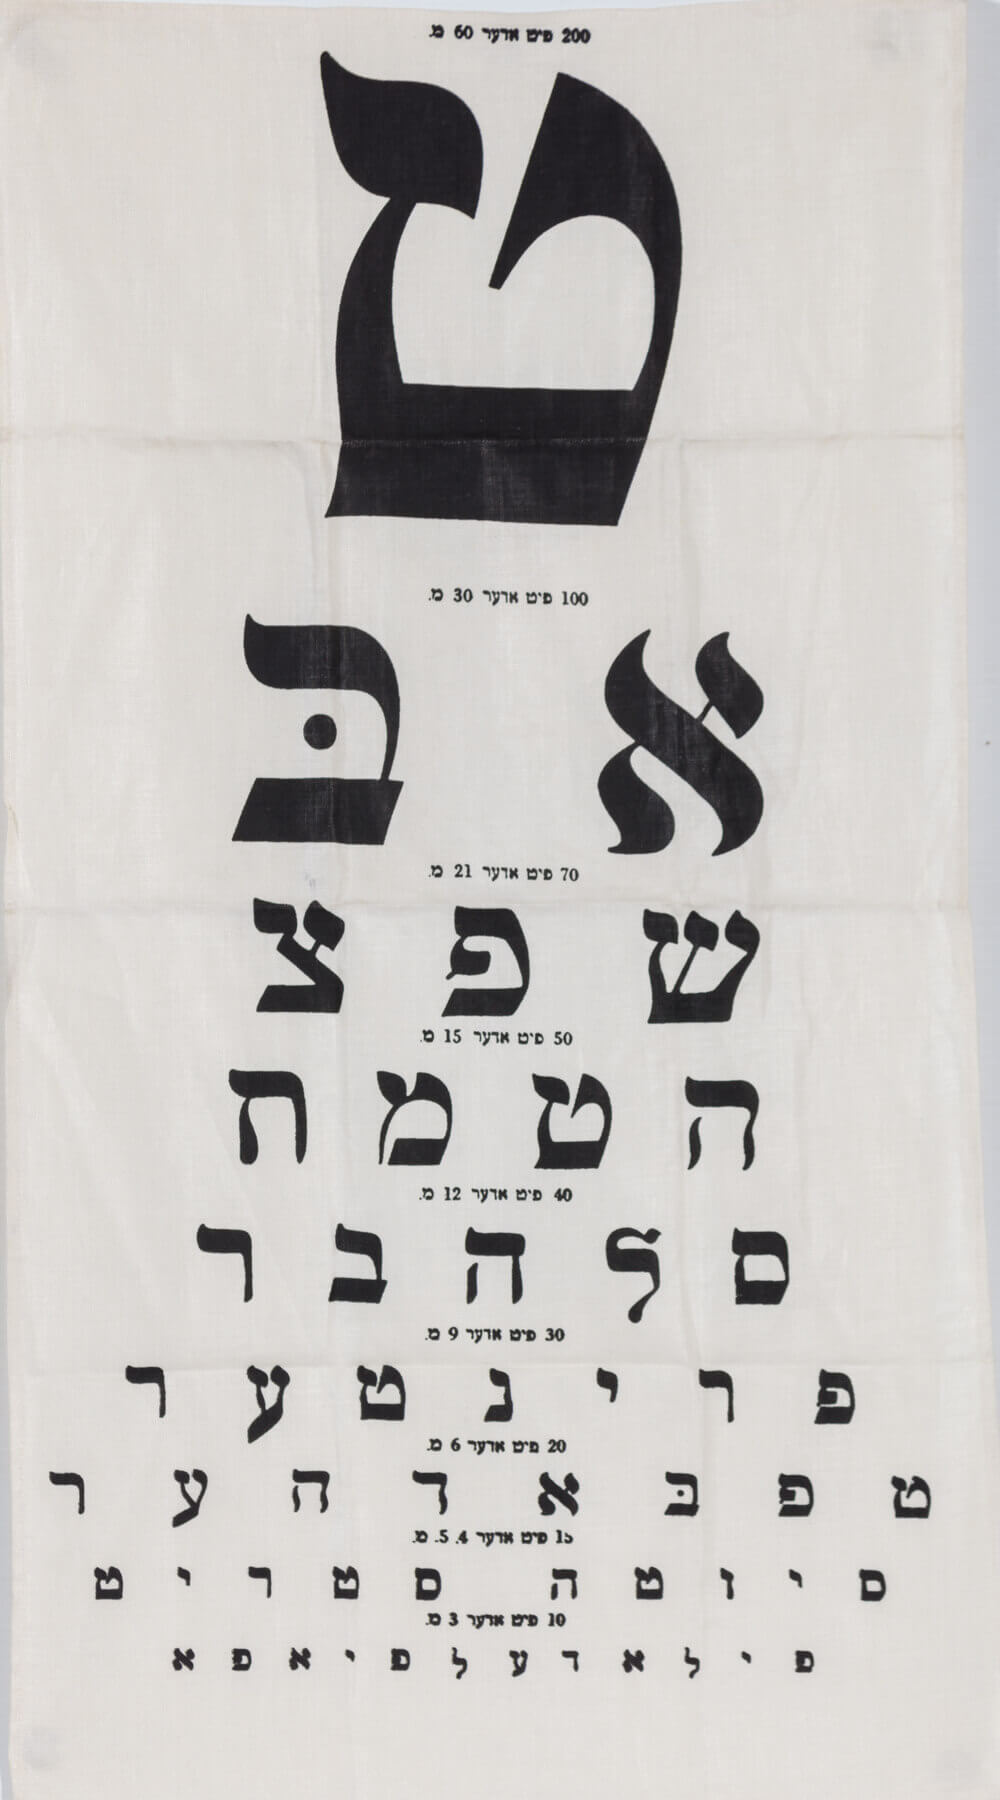 069. A VINTAGE YIDDISH OPTOMETRIST EYE CHART